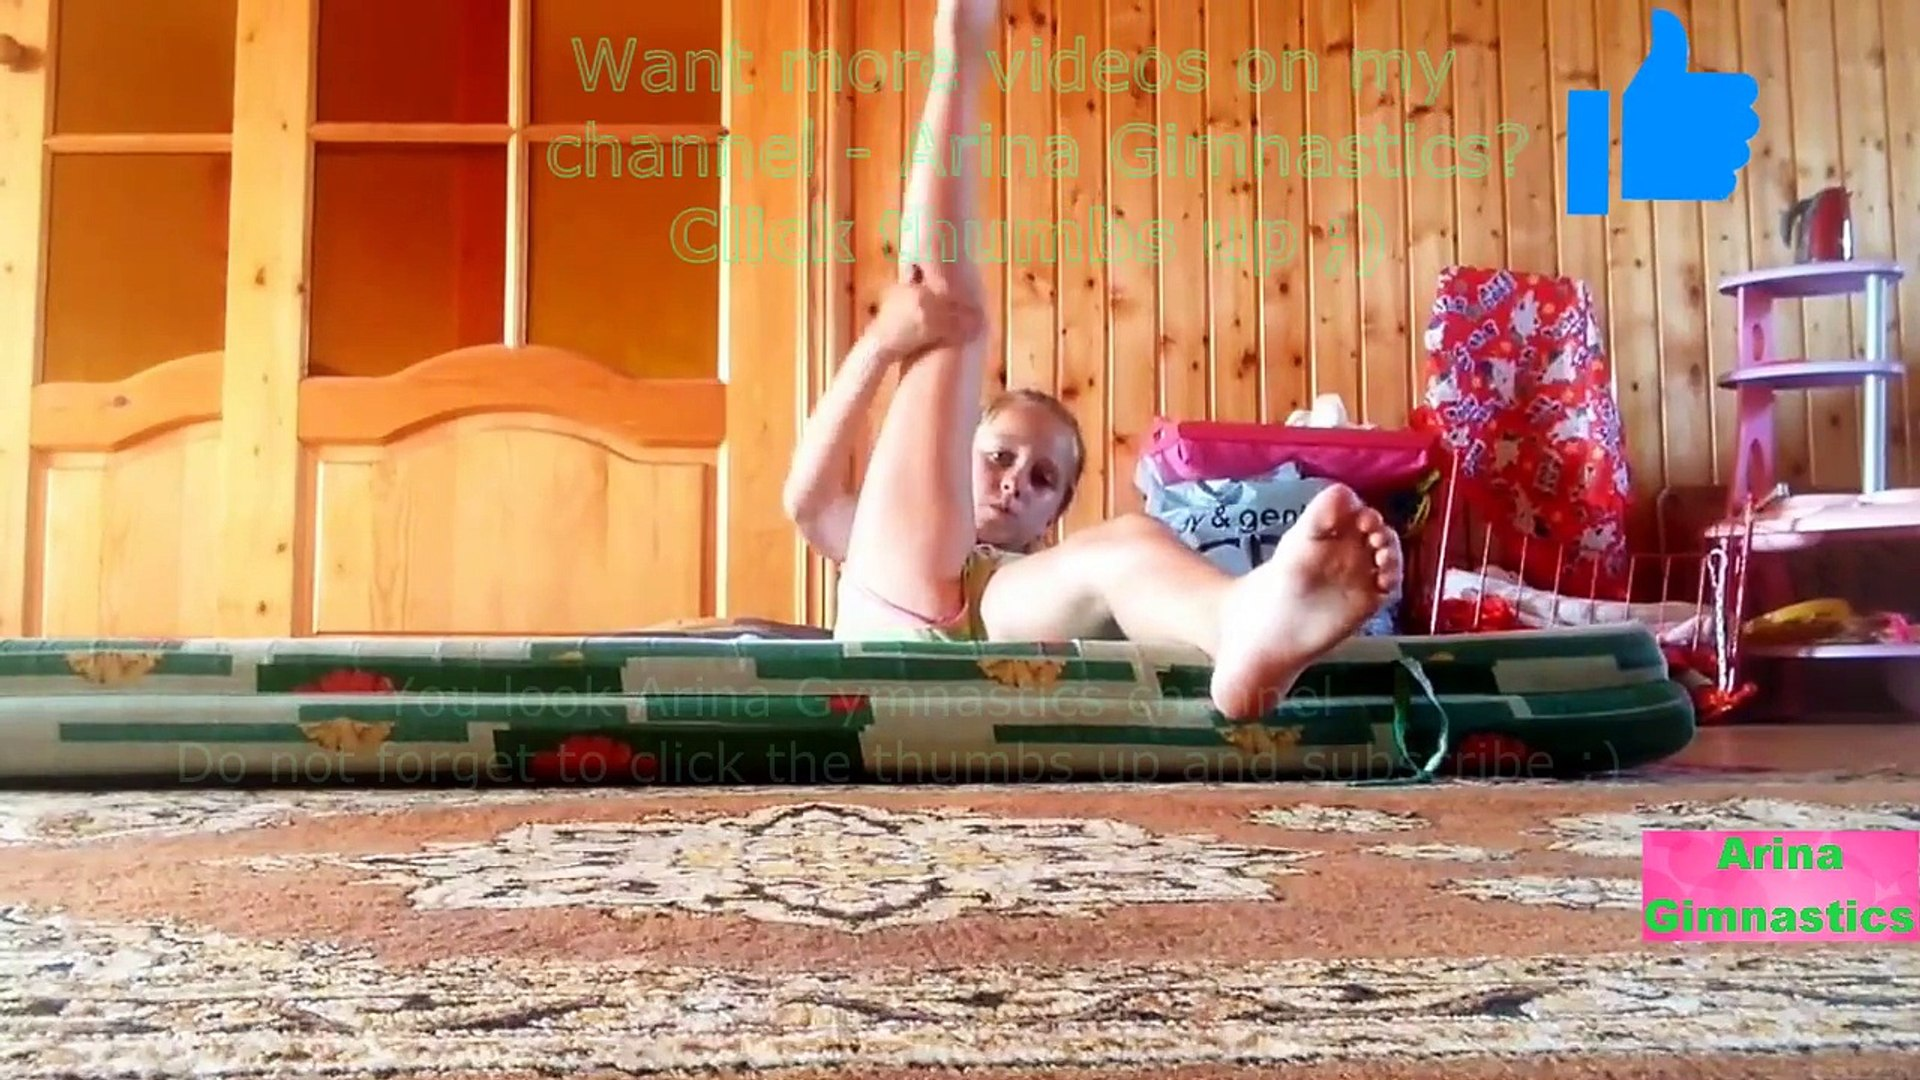 Gymnastics at home. Stretching the splits. Гимнастика дома. Растяжка